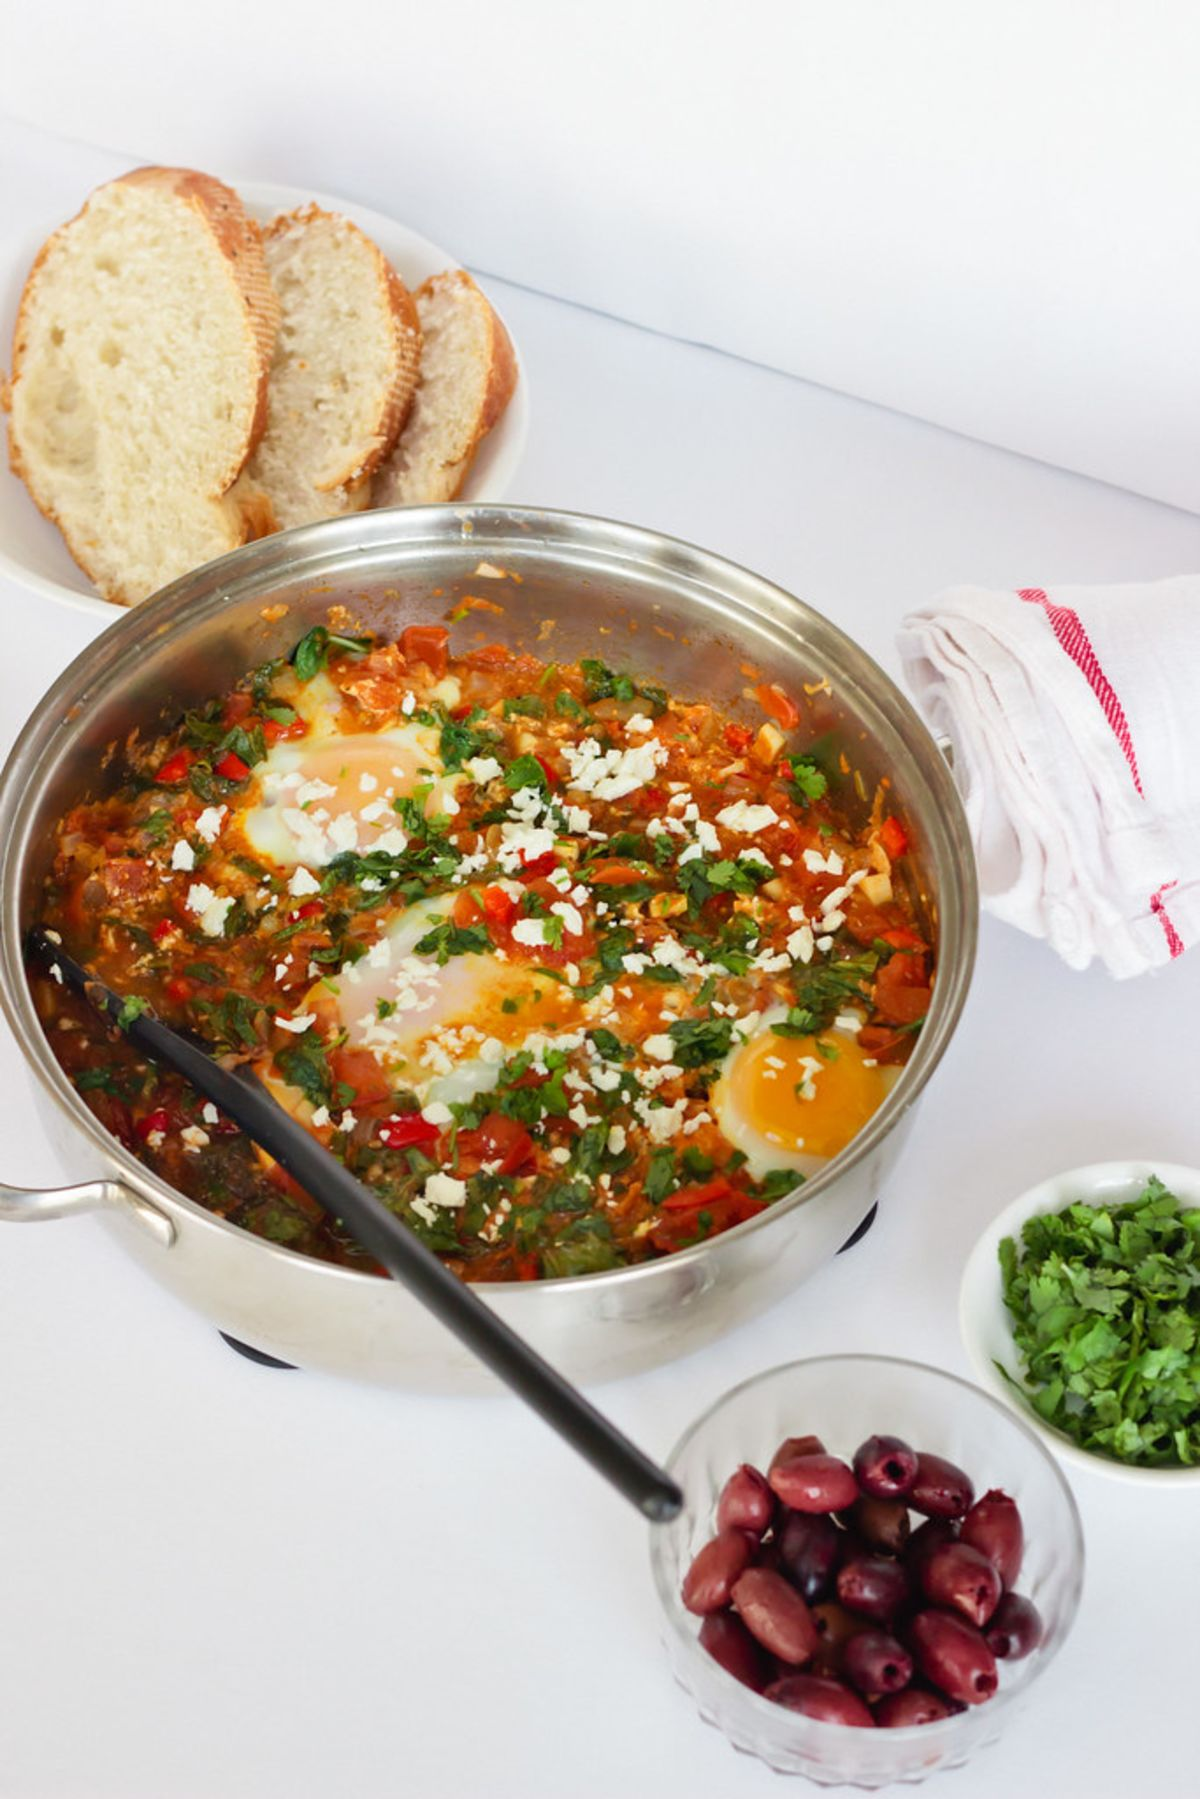 Spinach and Pepper Shakshuka Recipe